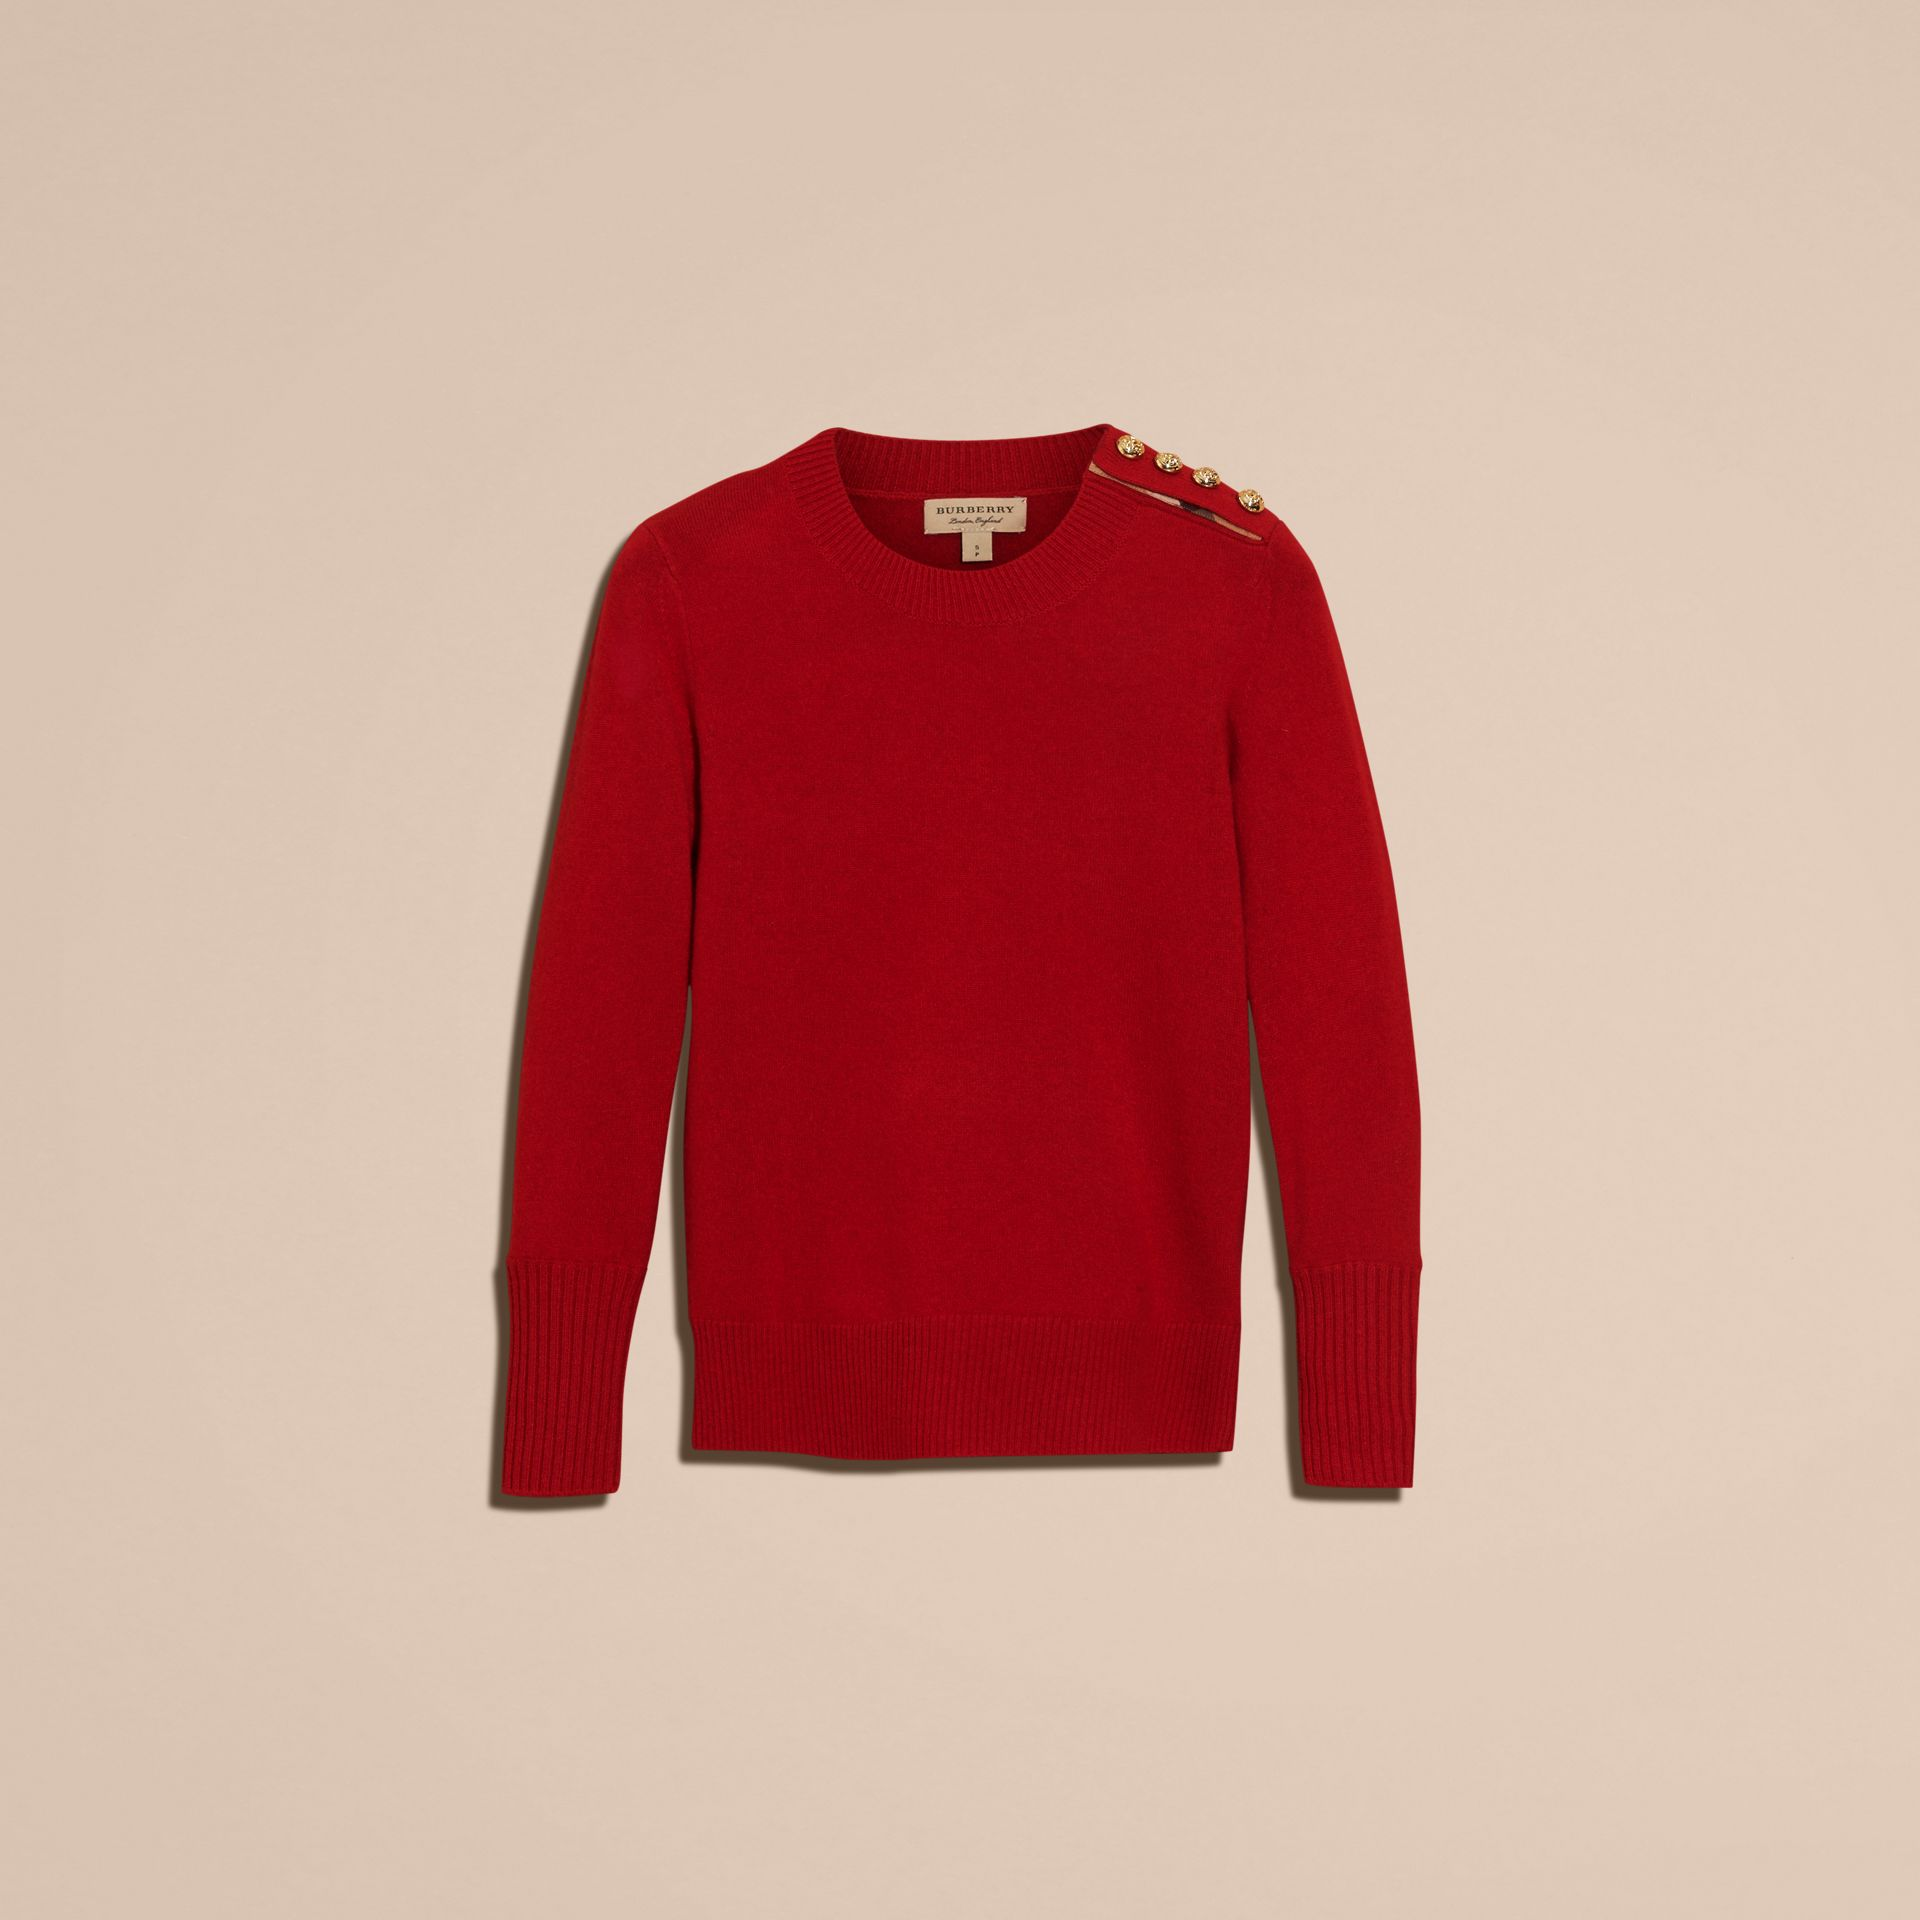 Parade red Cashmere Sweater with Crested Buttons Parade Red - gallery image 4